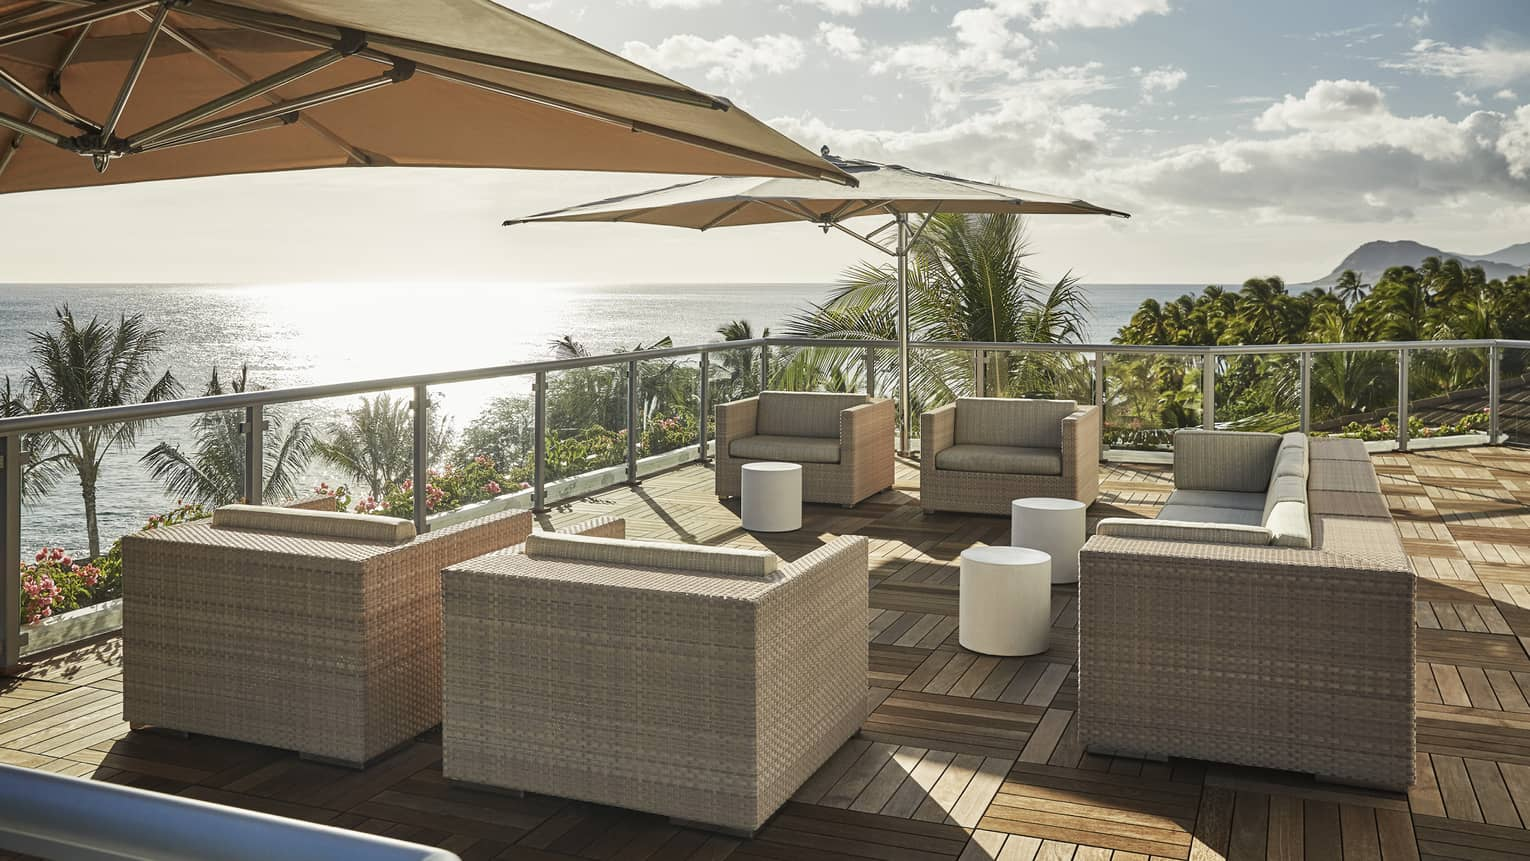 Presidential Suite patio with large wicker chairs, parquet floors, umbrellas, ocean view